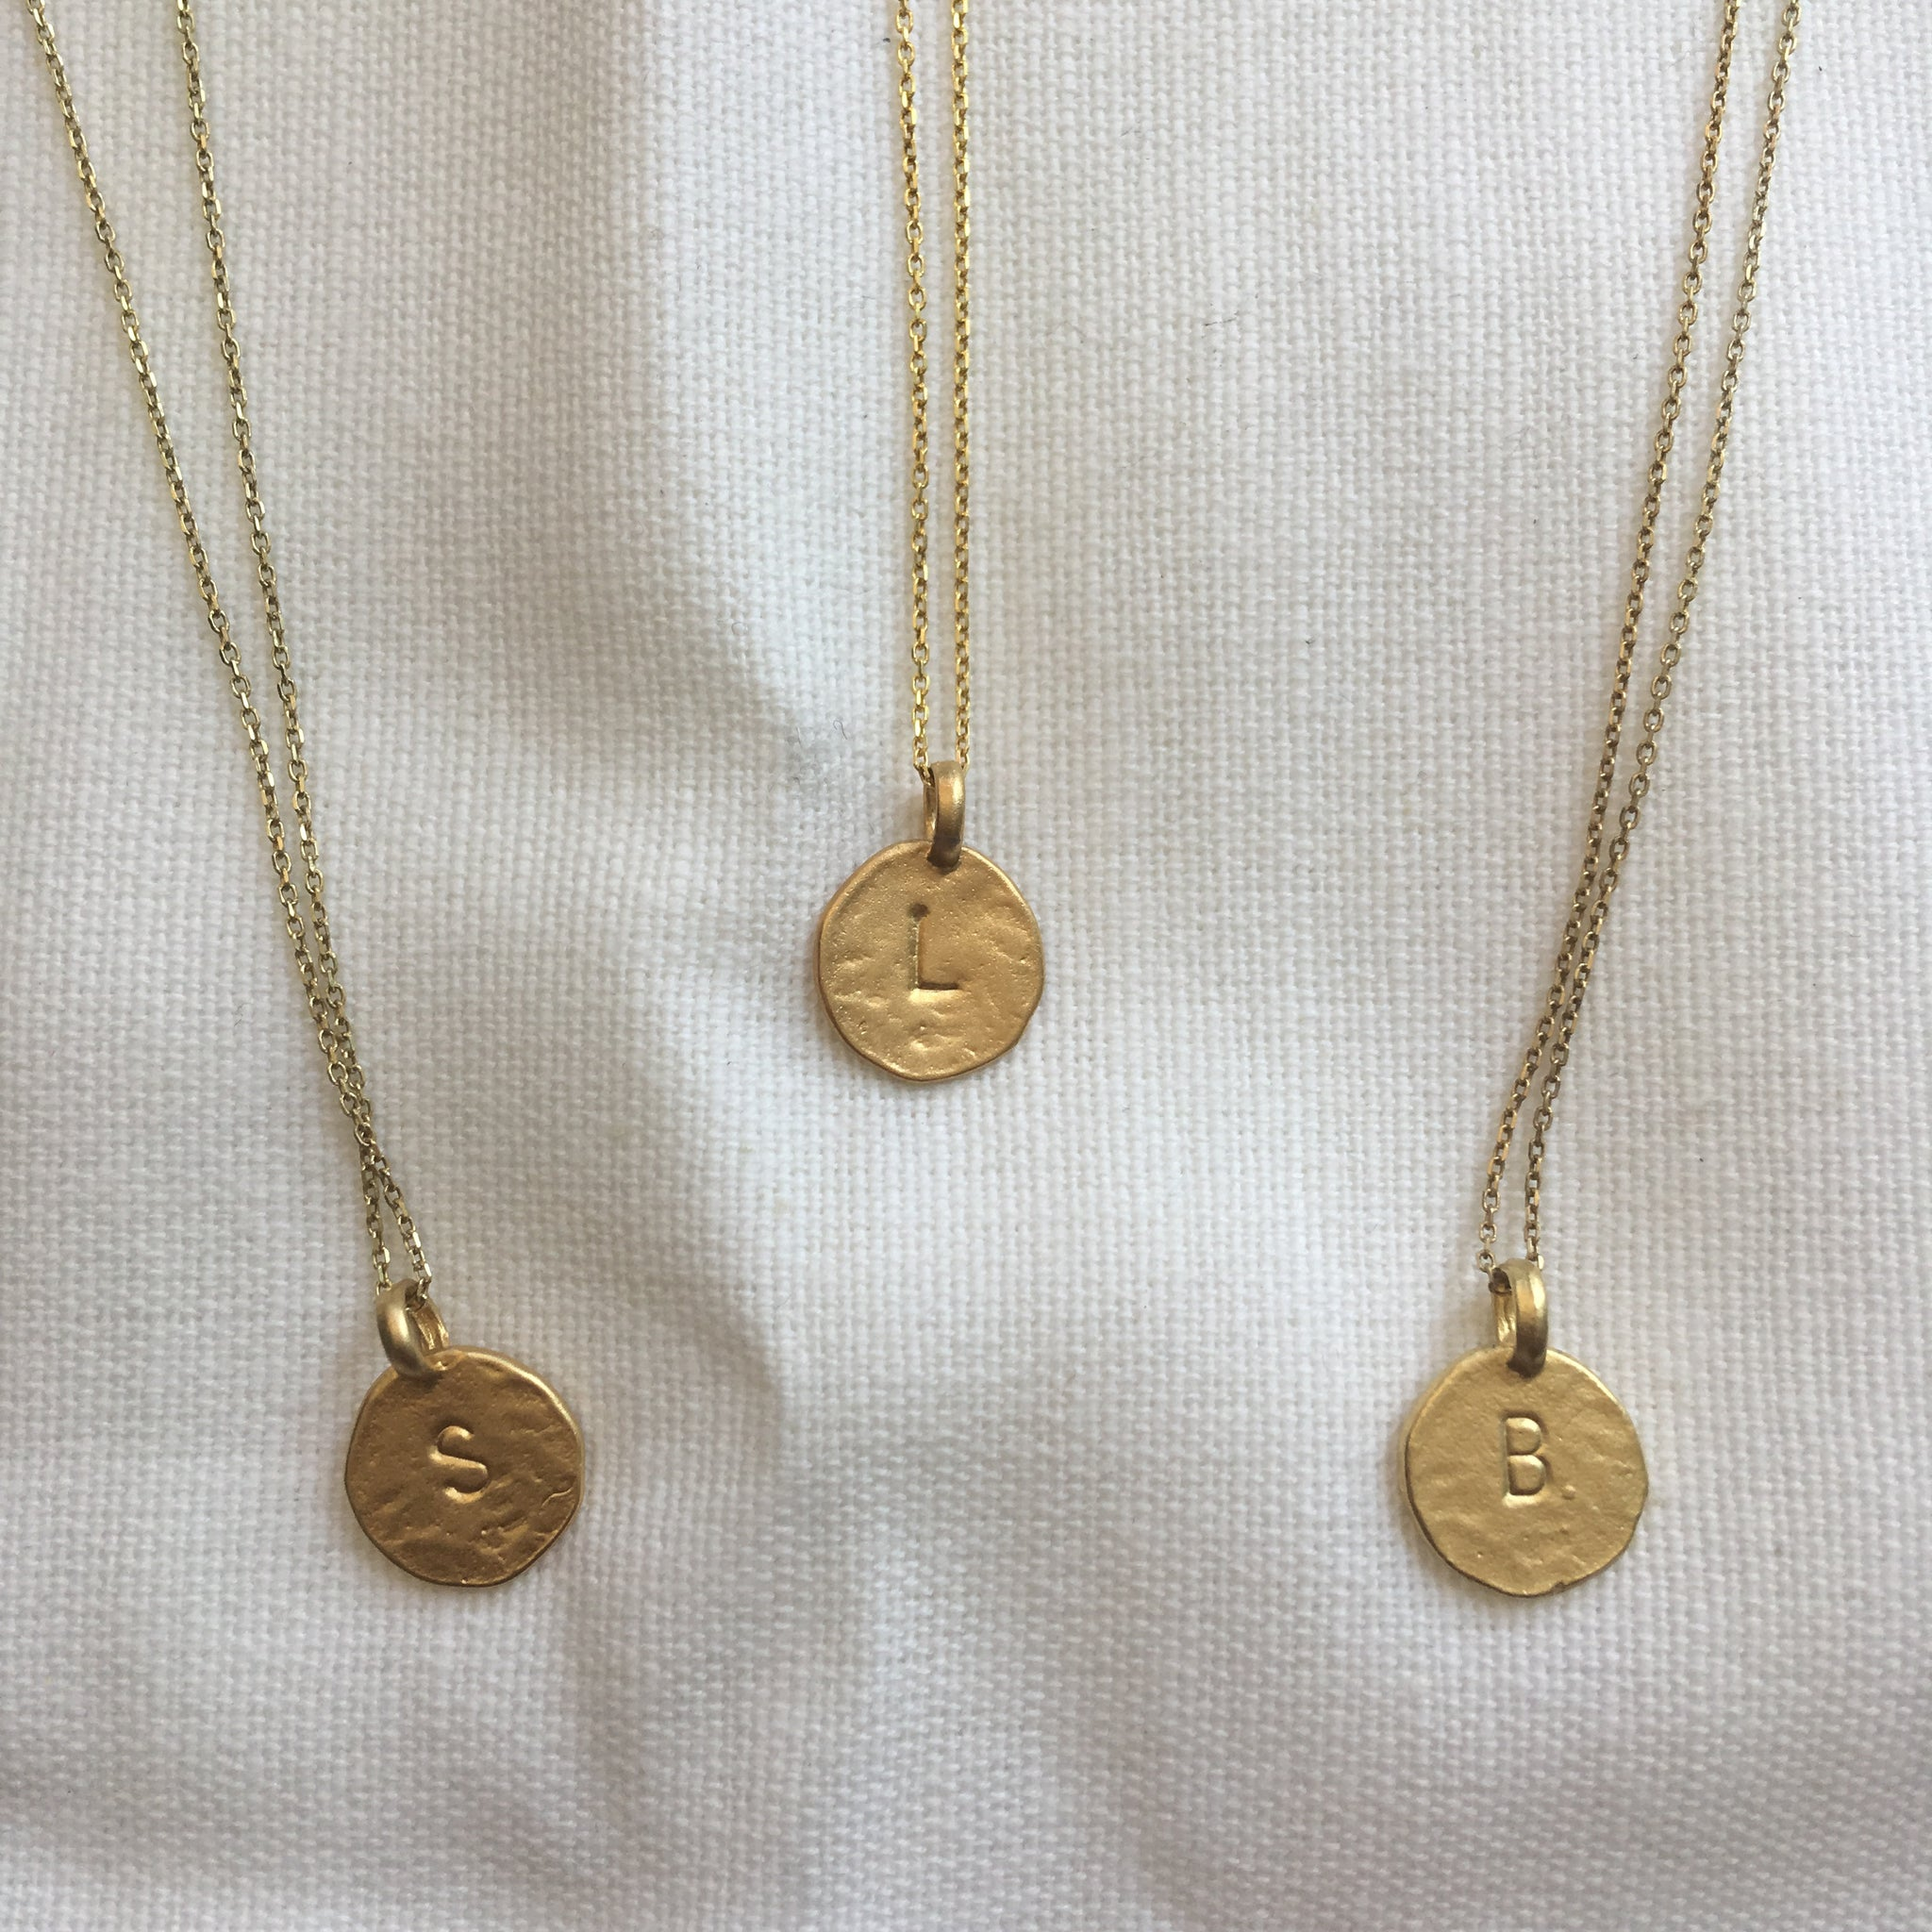 London Manori Gold Initial Necklace